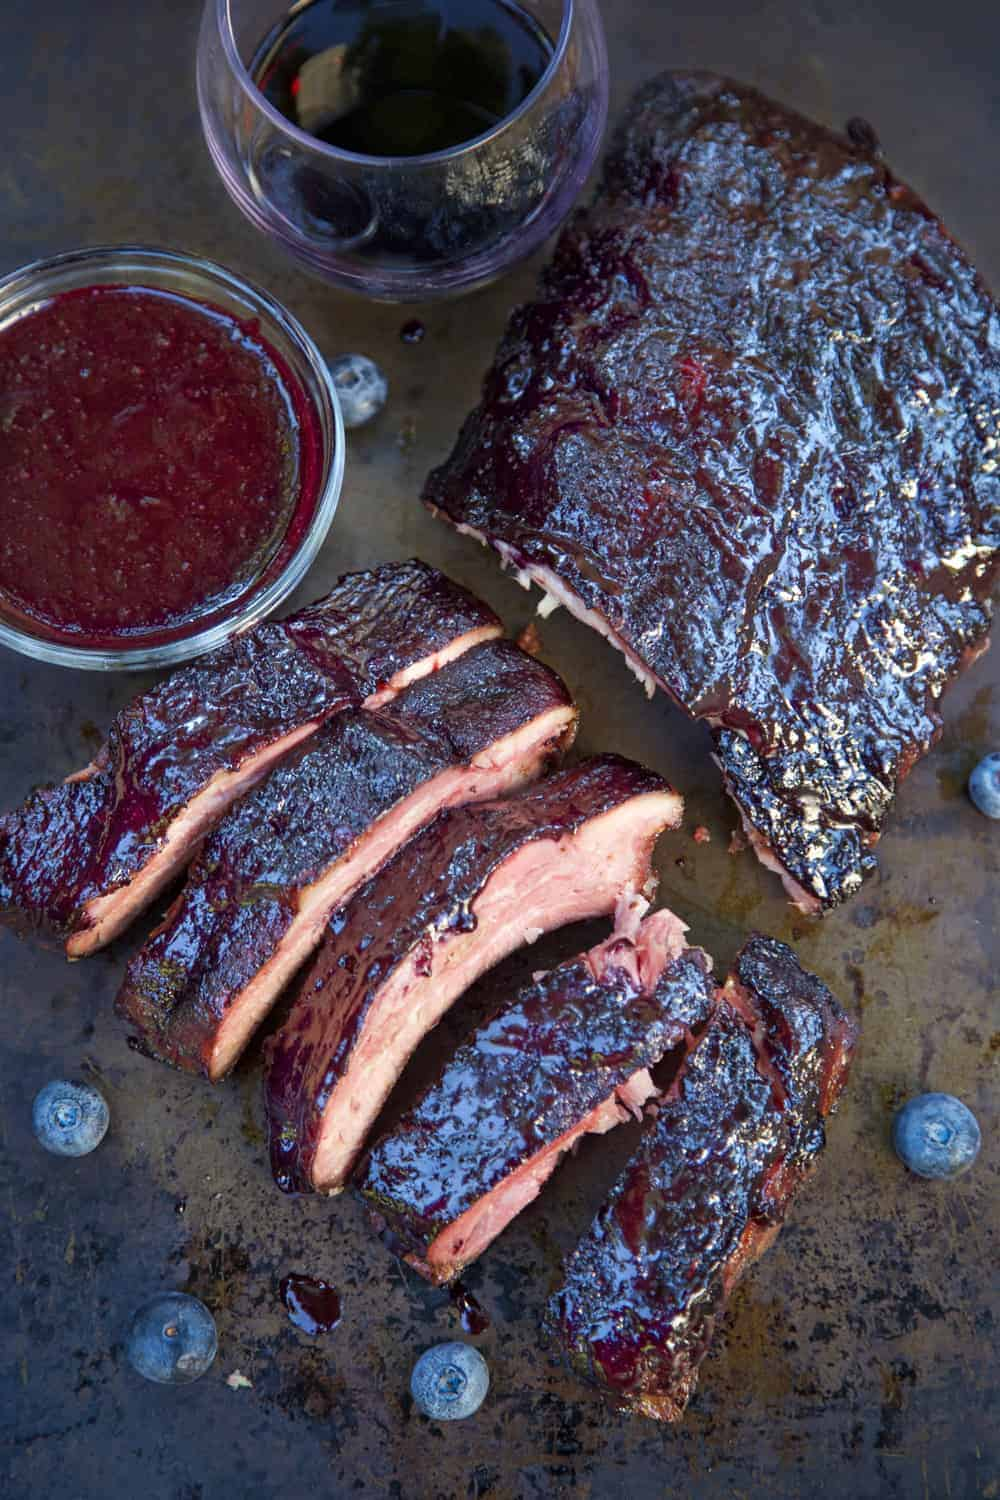 Blueberry Bourbon Smoked Ribs with Wine Pairing